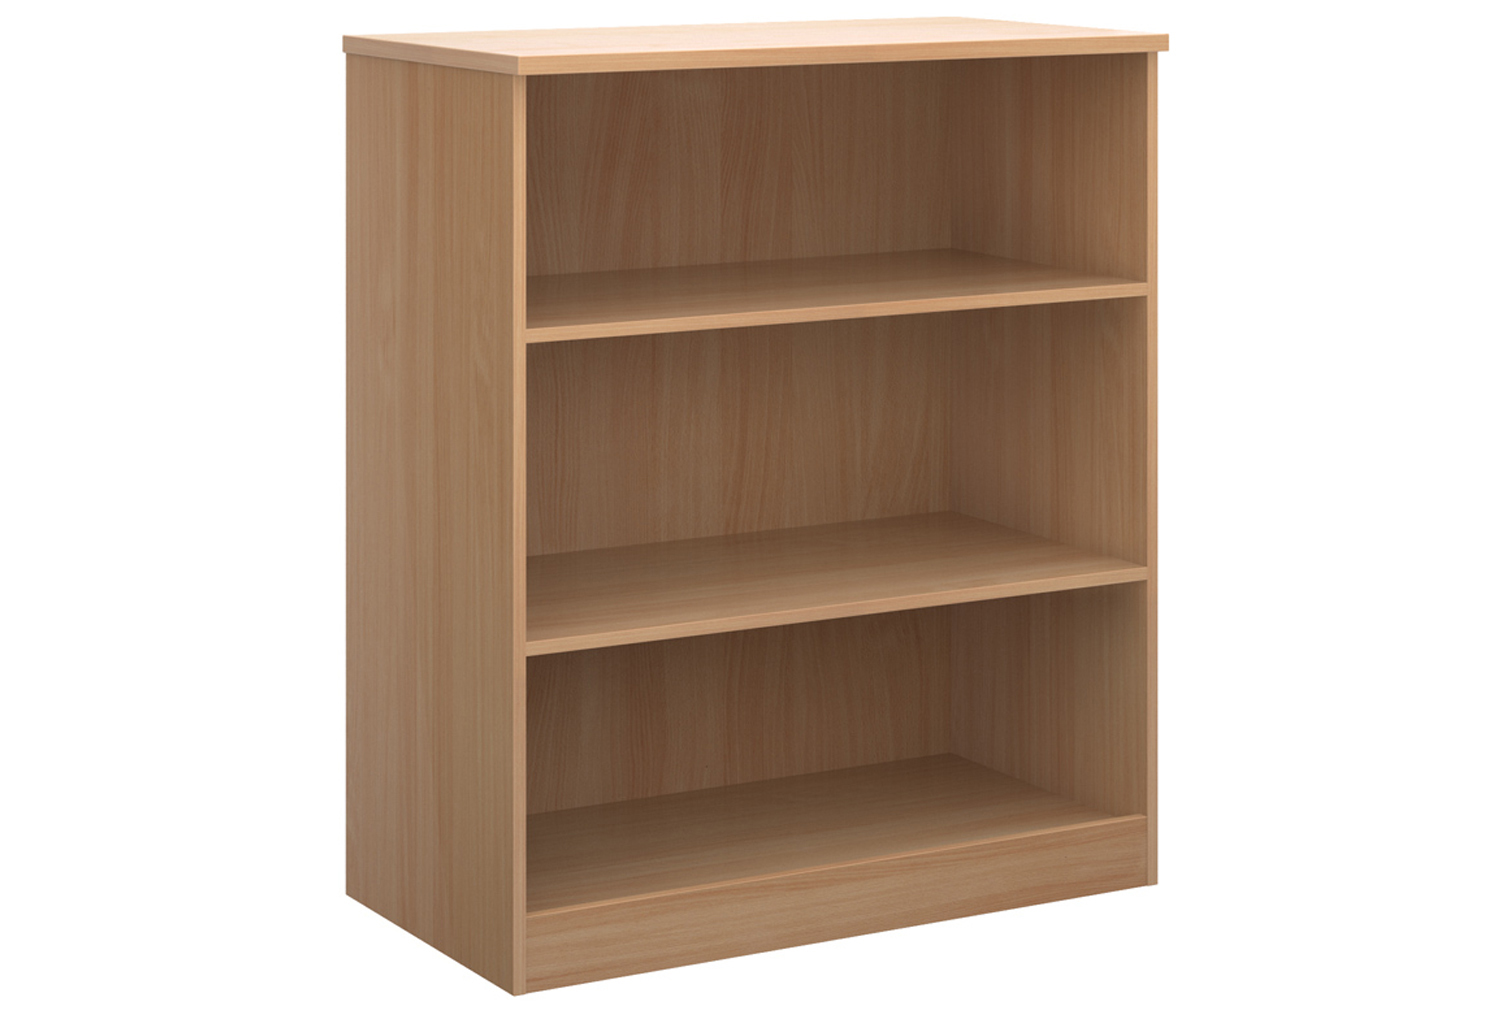 Image of High Capacity Bookcases, Beech